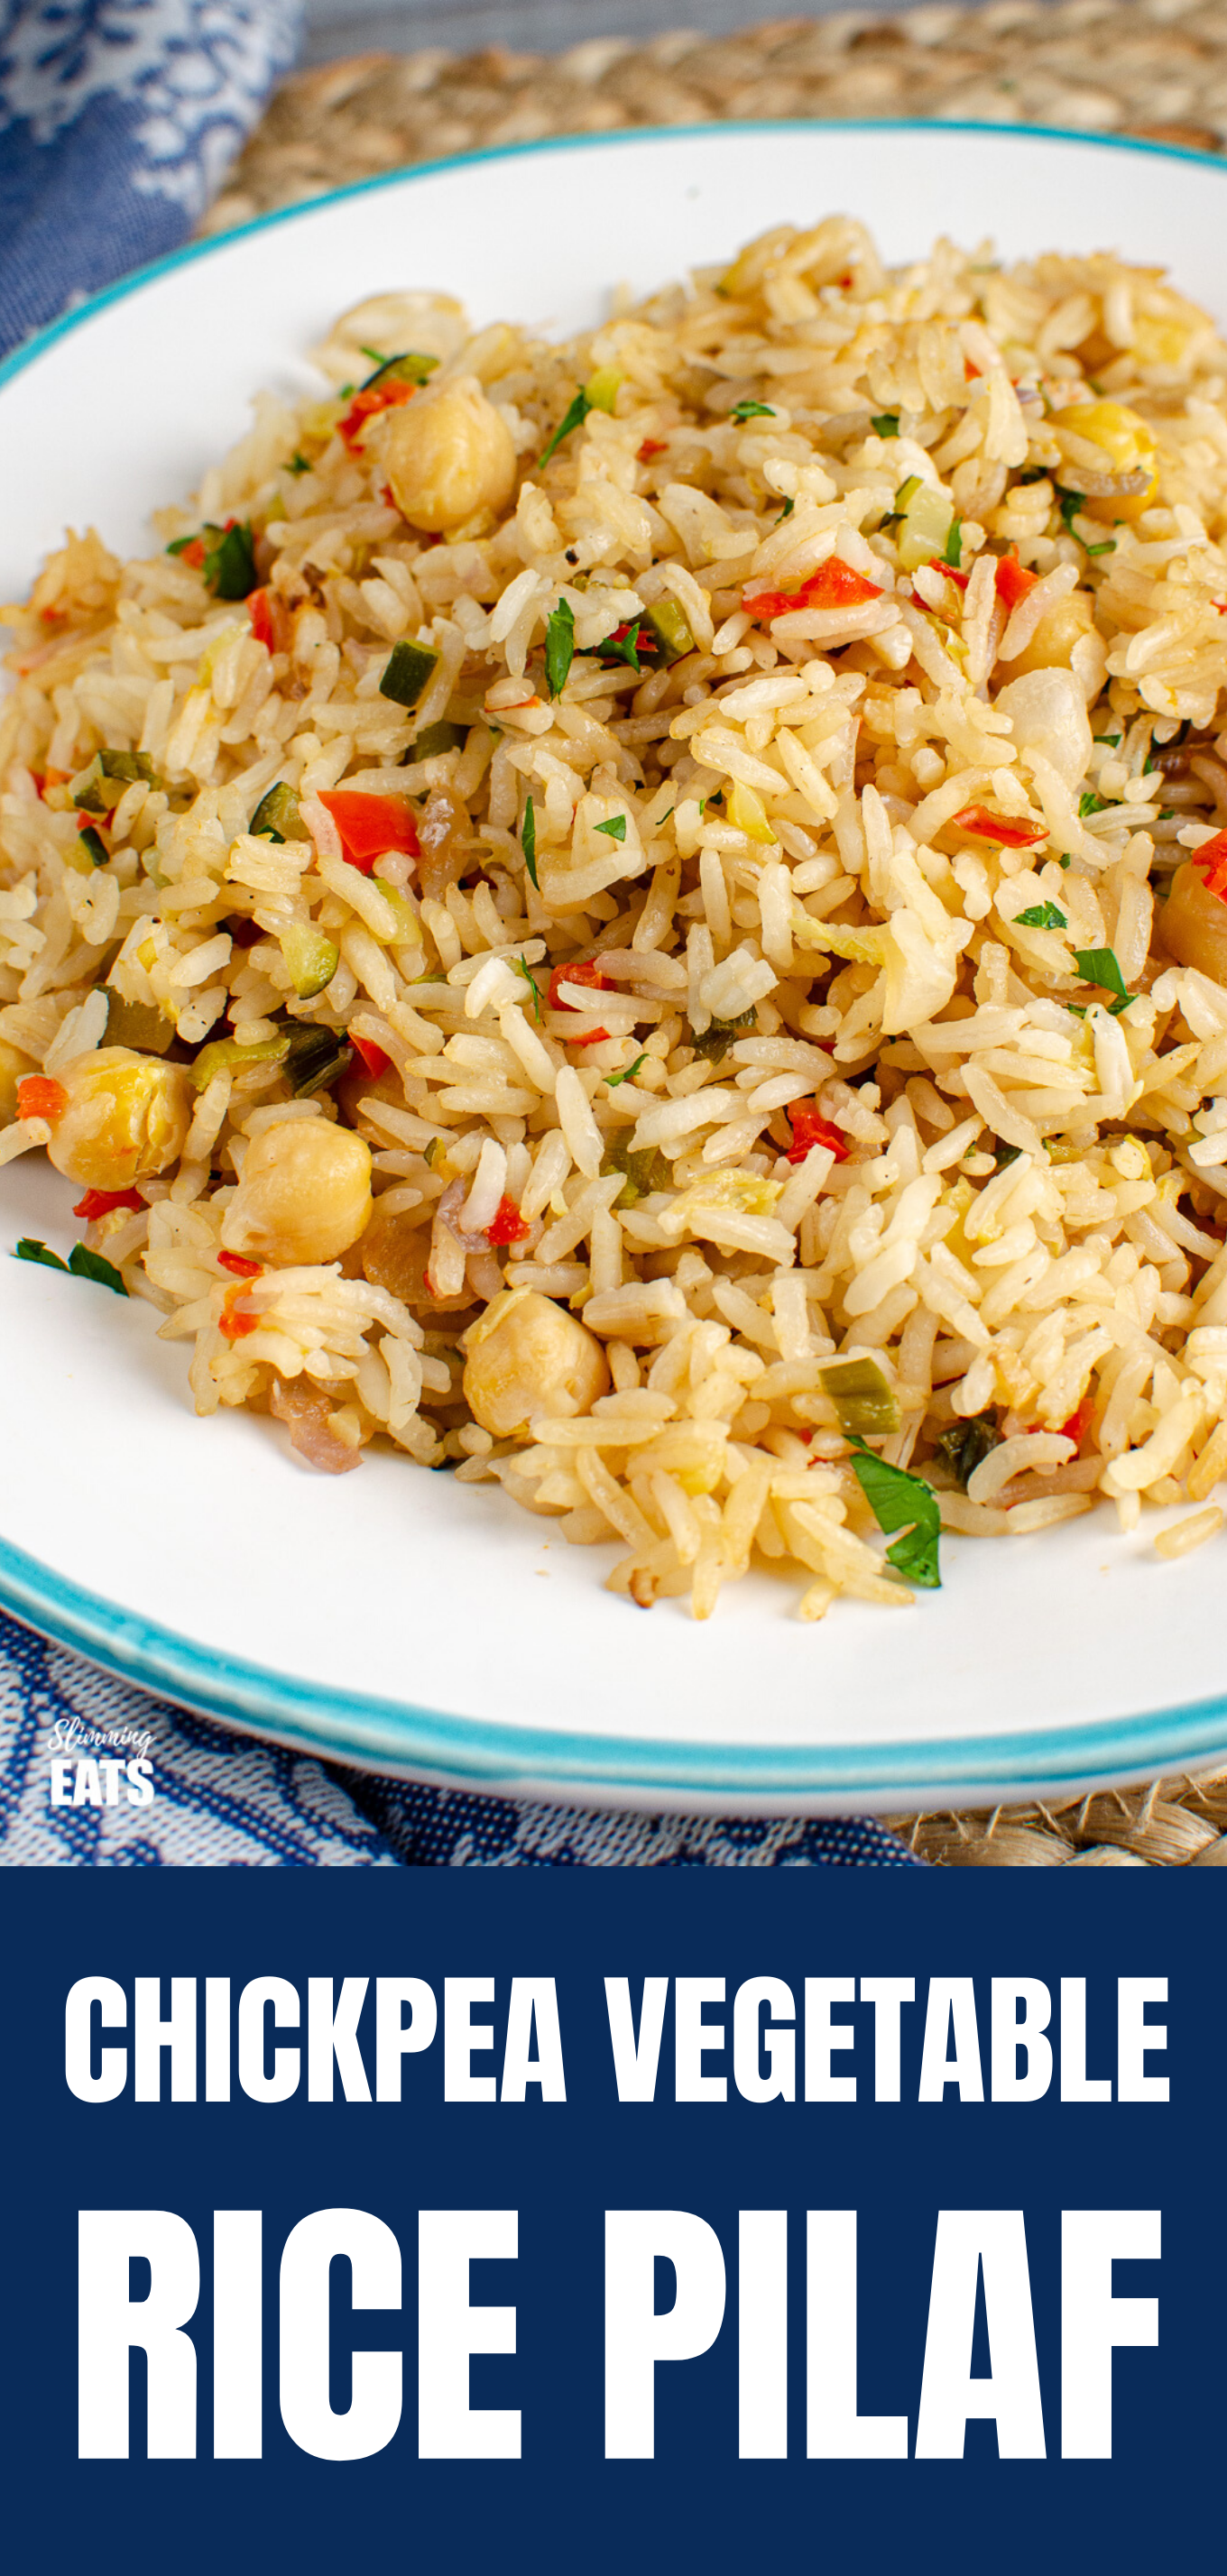 Chickpea Vegetable Rice Pilaf PIN IMAGE